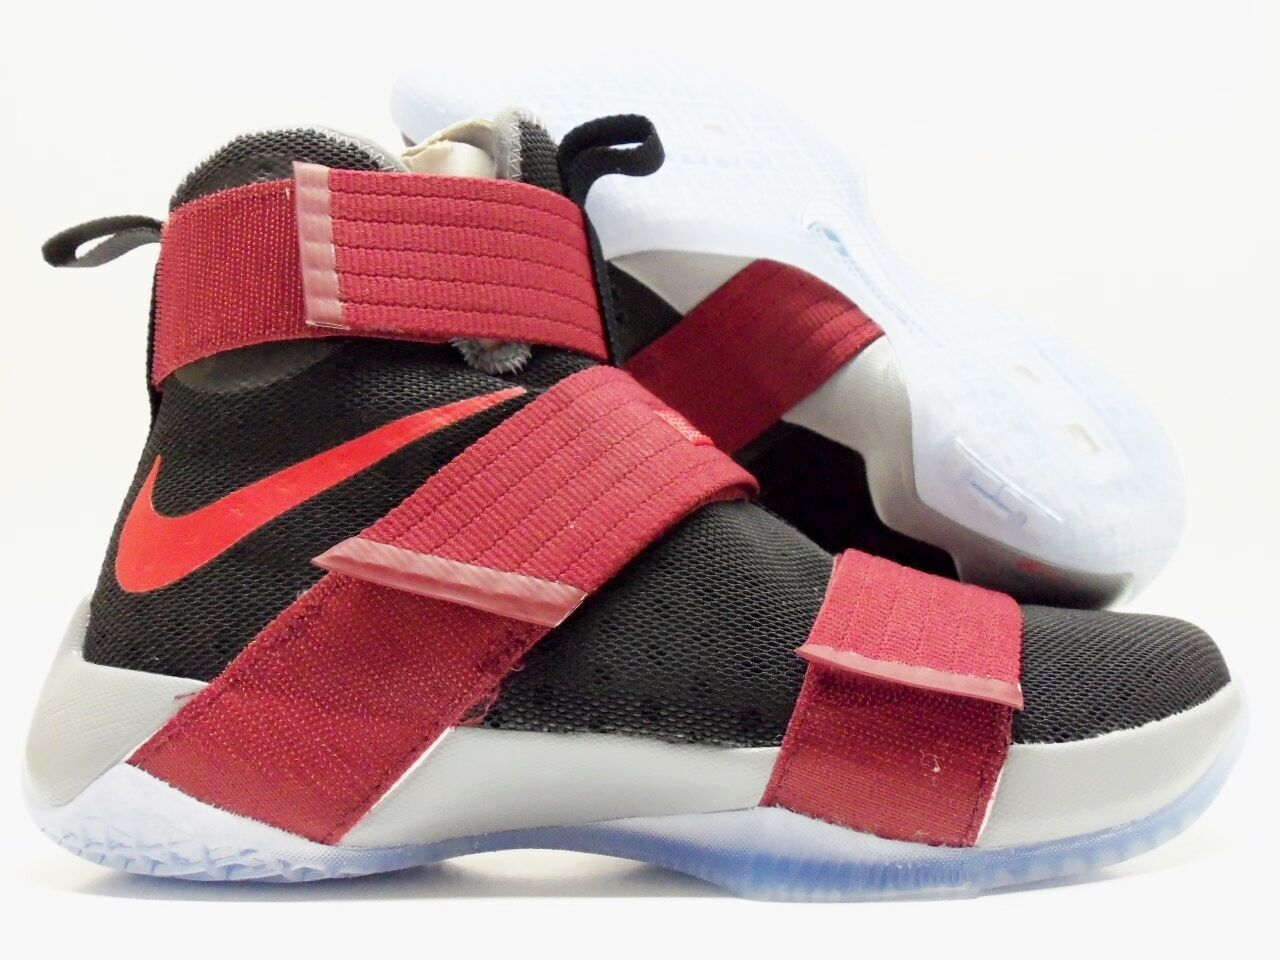 NIKE LEBRON SOLDIER 10 ID CHAMPIONSHIP BLACK GYM RED SIZE MEN'S 8 [885682-991]